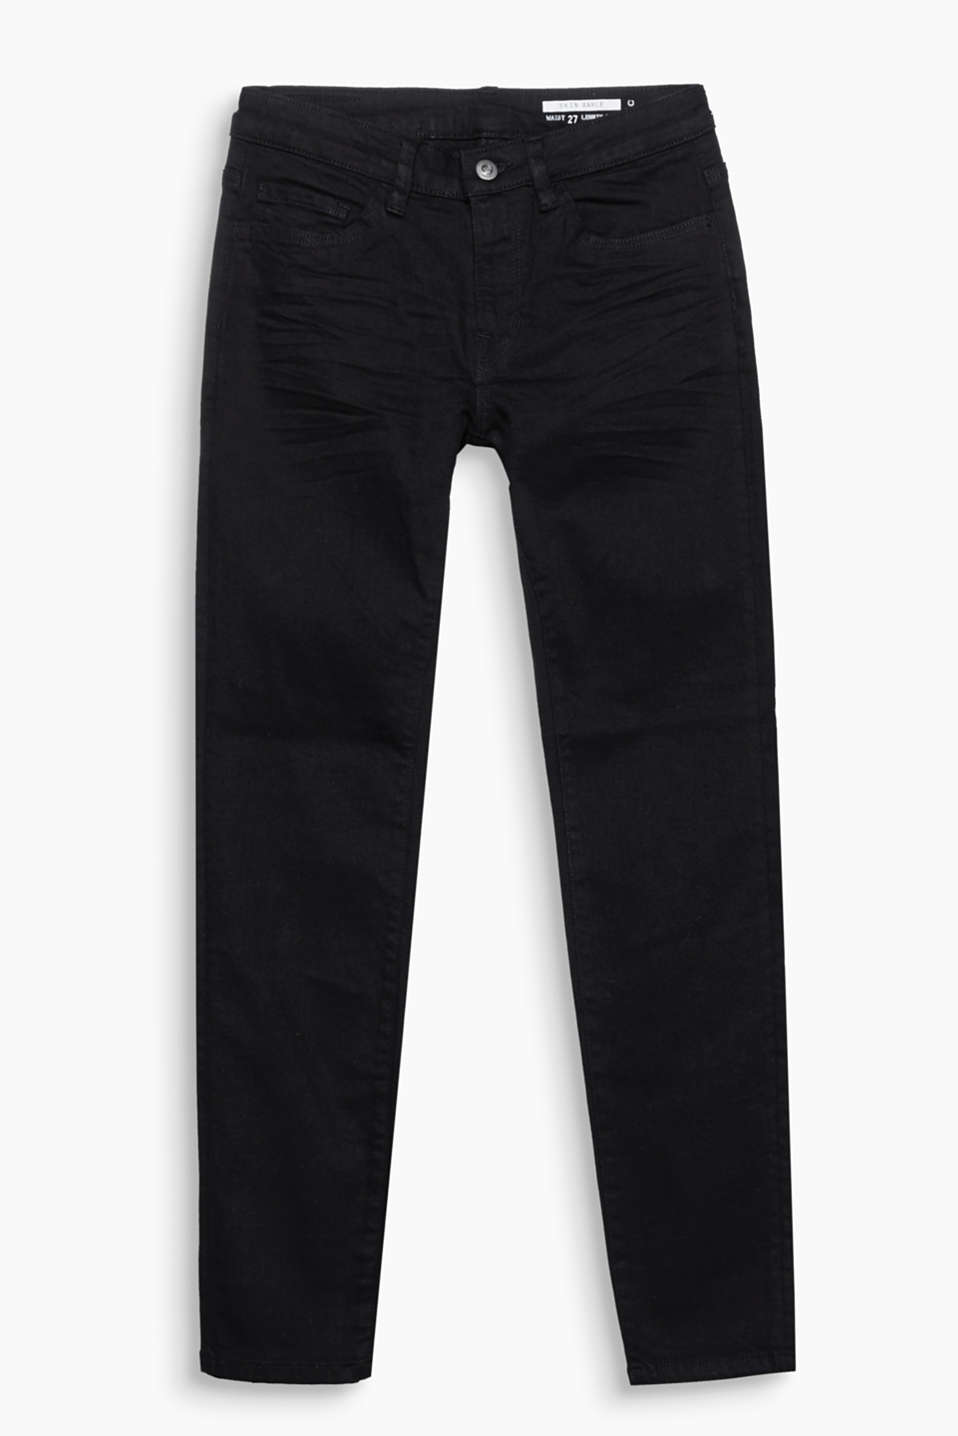 Cropped five-pocket jeans in cotton denim with added stretch for comfort and authentic garment-washed effects